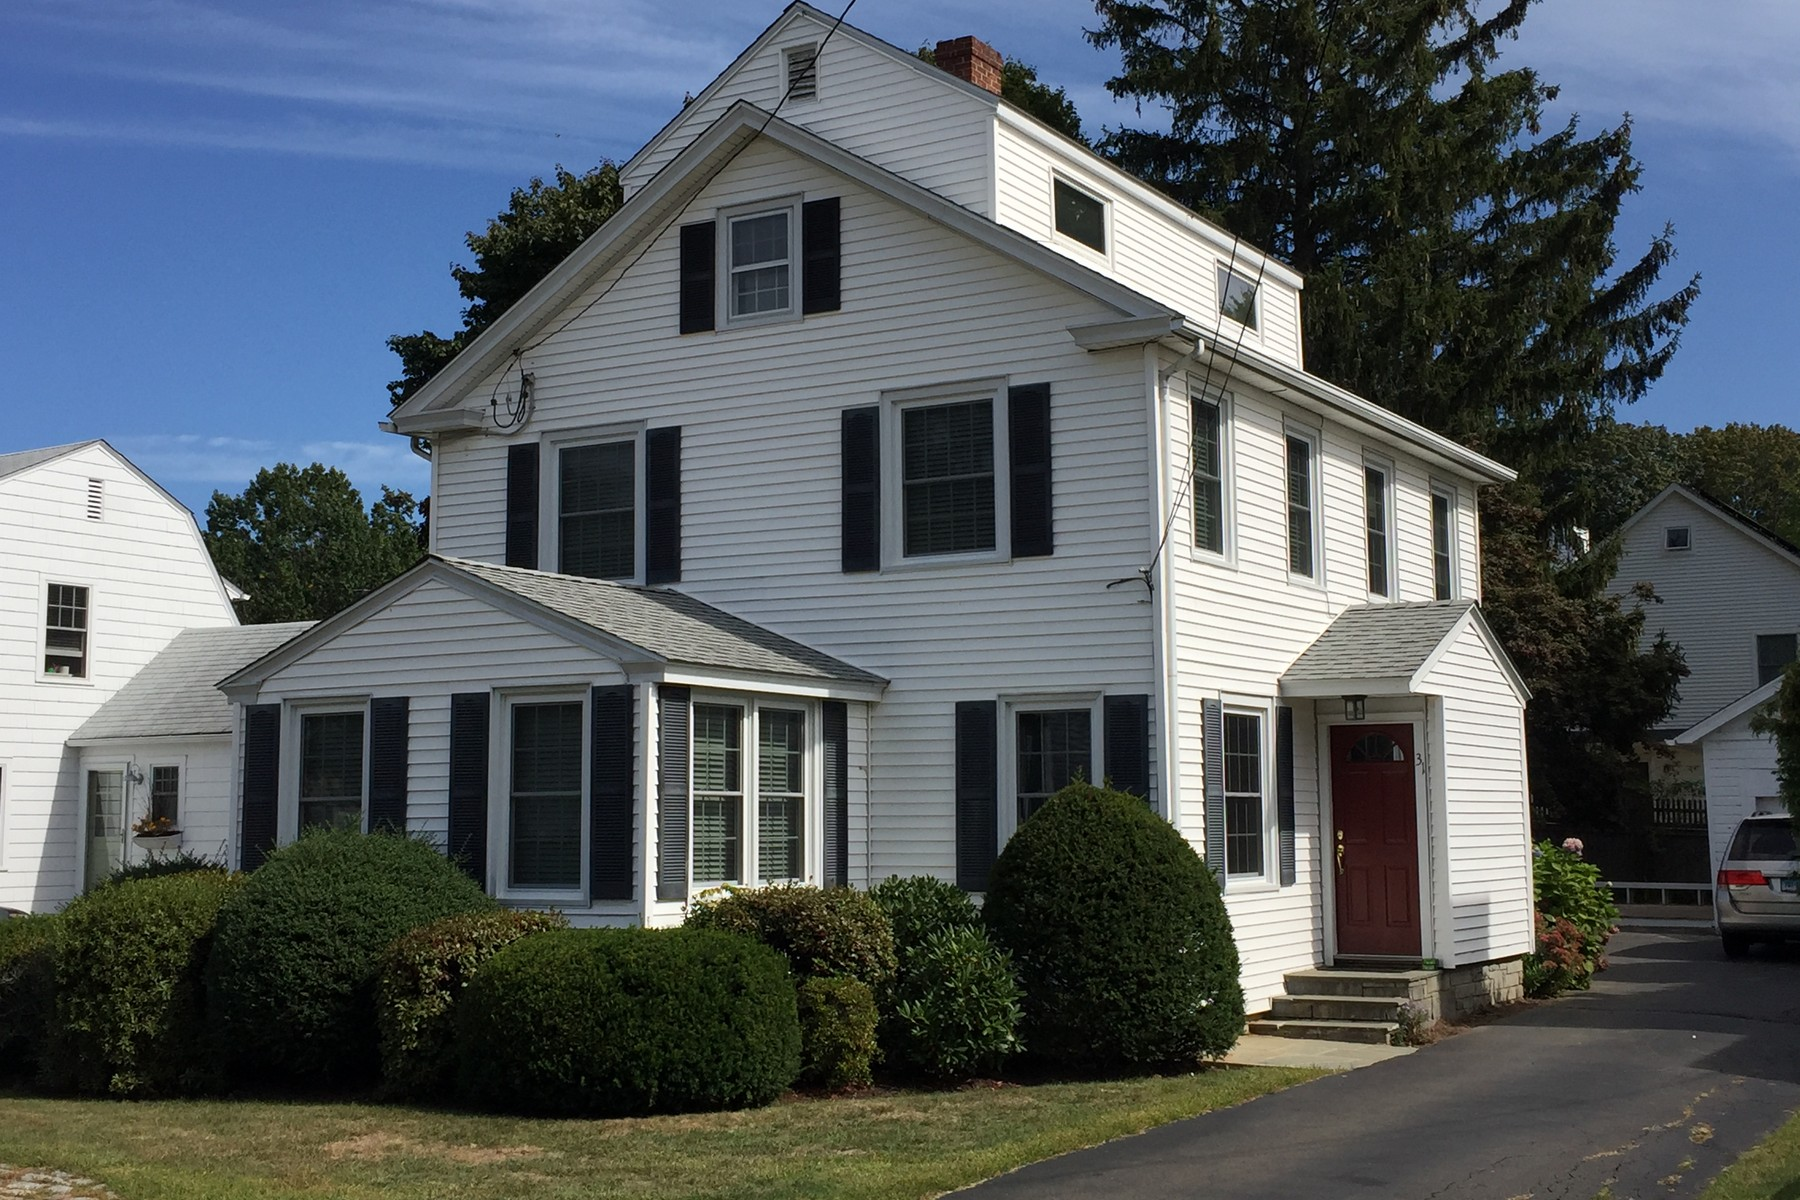 Single Family Home for Sale at 31 Woodlawn Ave Madison, Connecticut 06443 United States